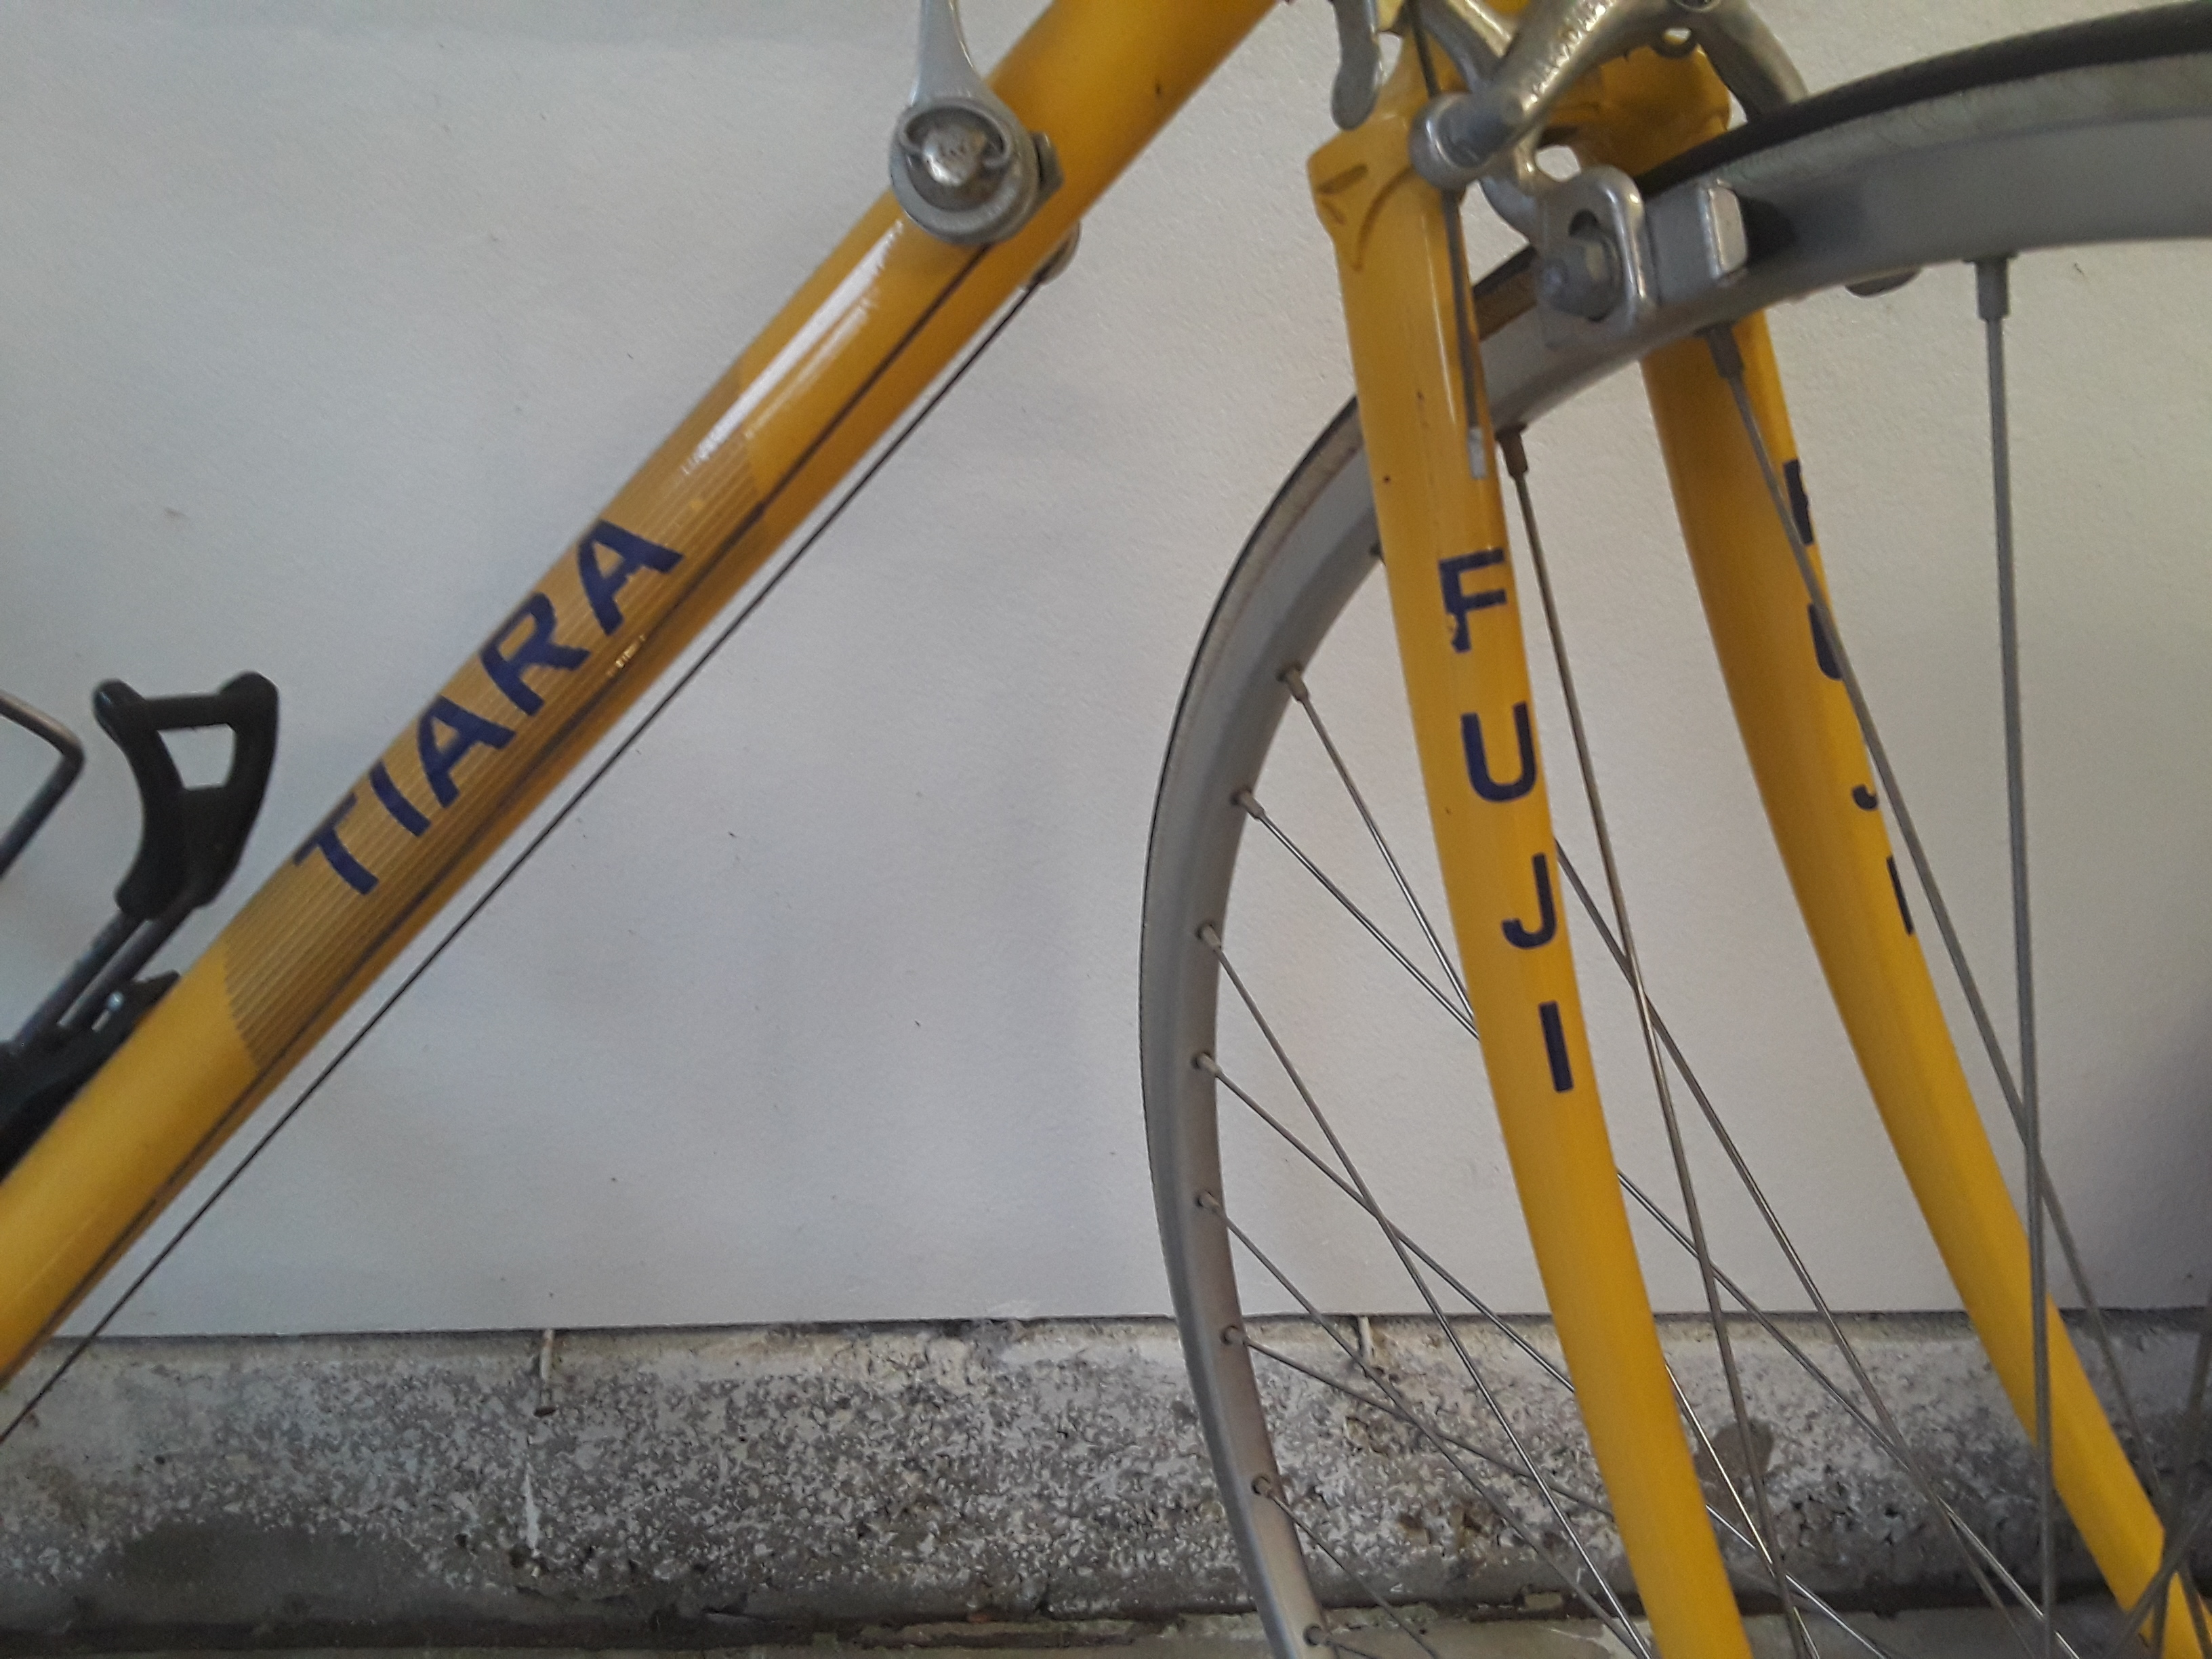 """RARE"" 1987 Fuji Tiara 12 Speed Racing Bicycle"